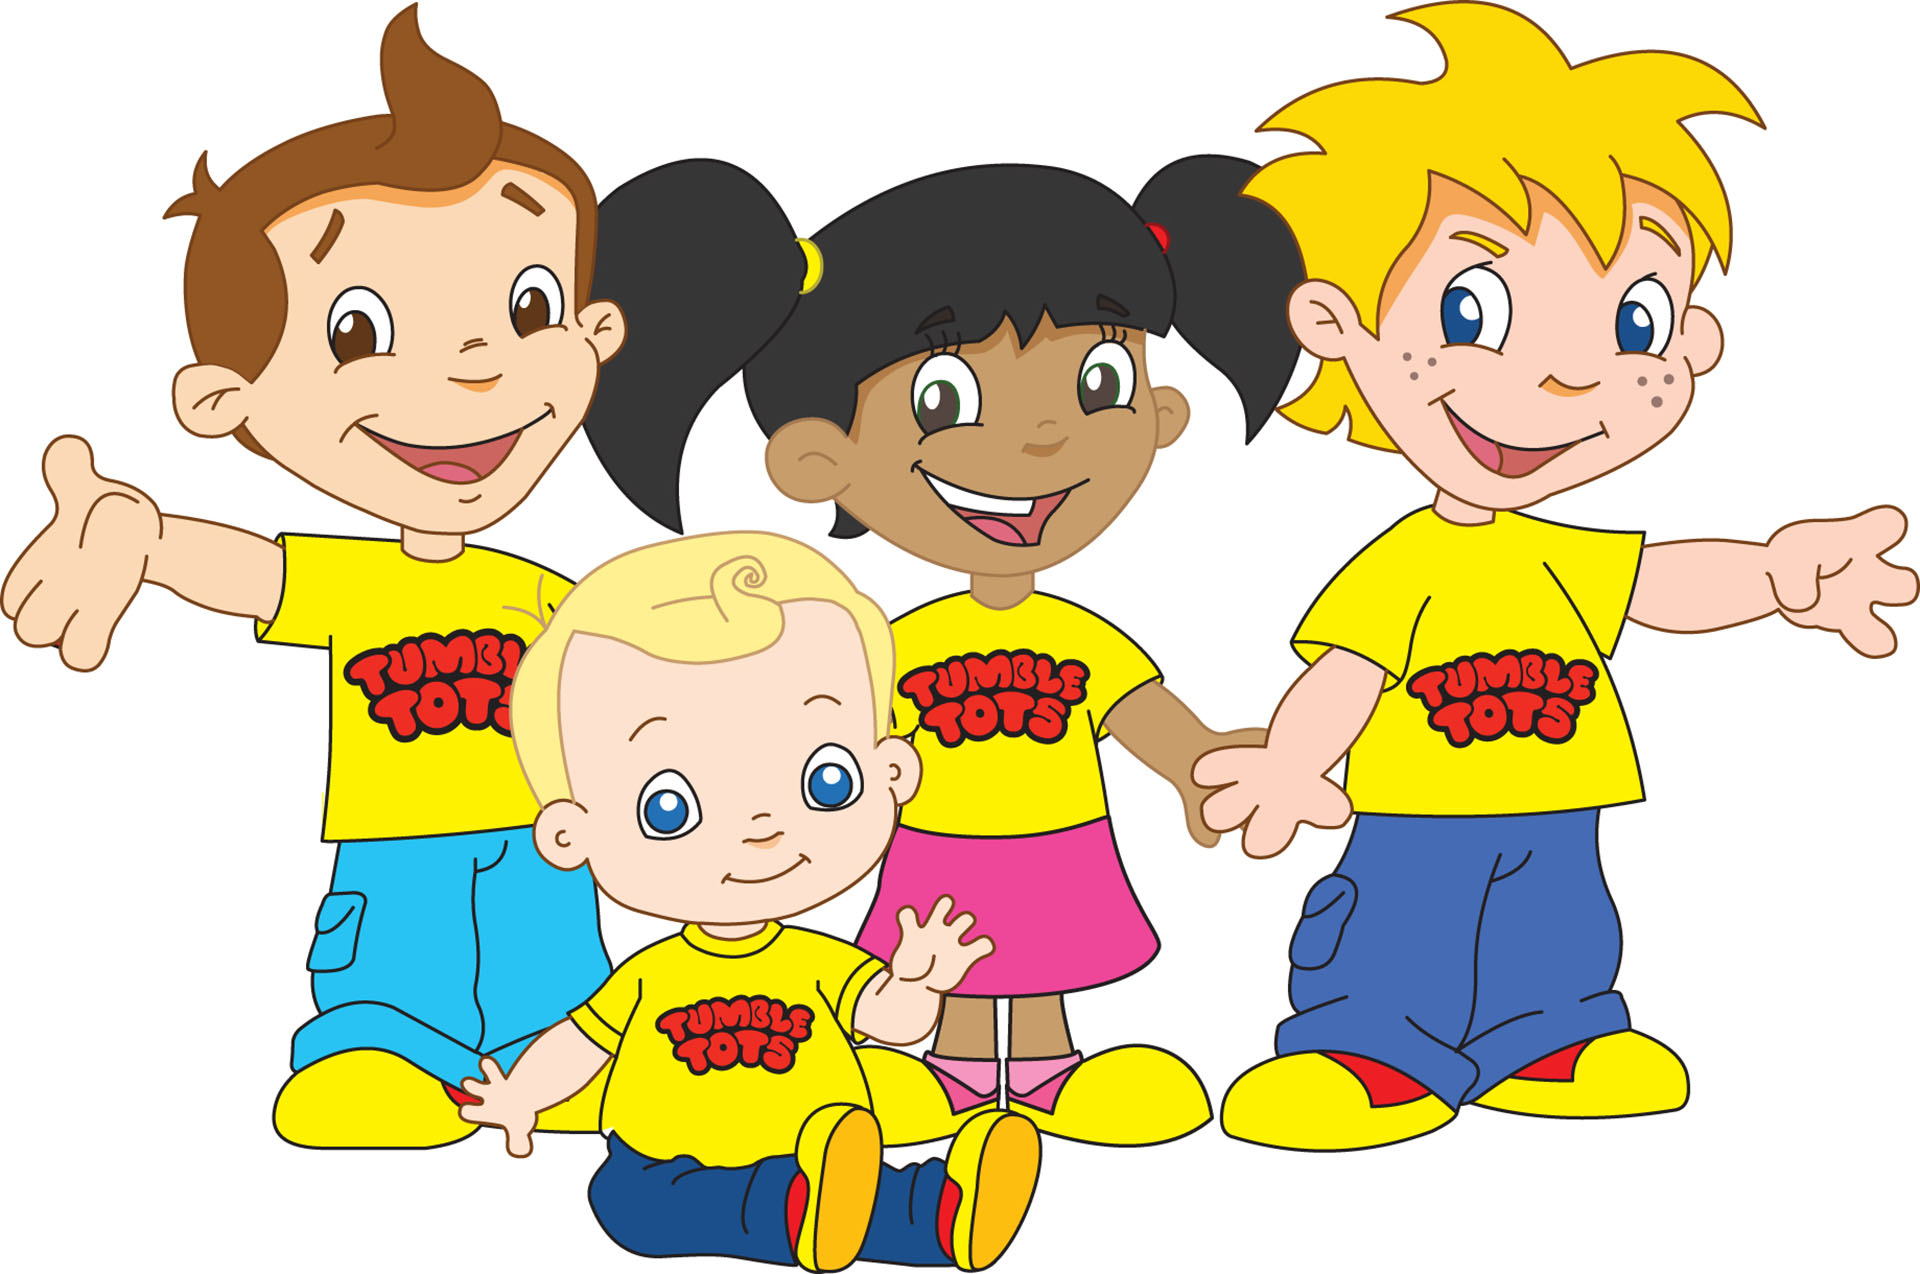 Tumble Tots Chigwell's main image